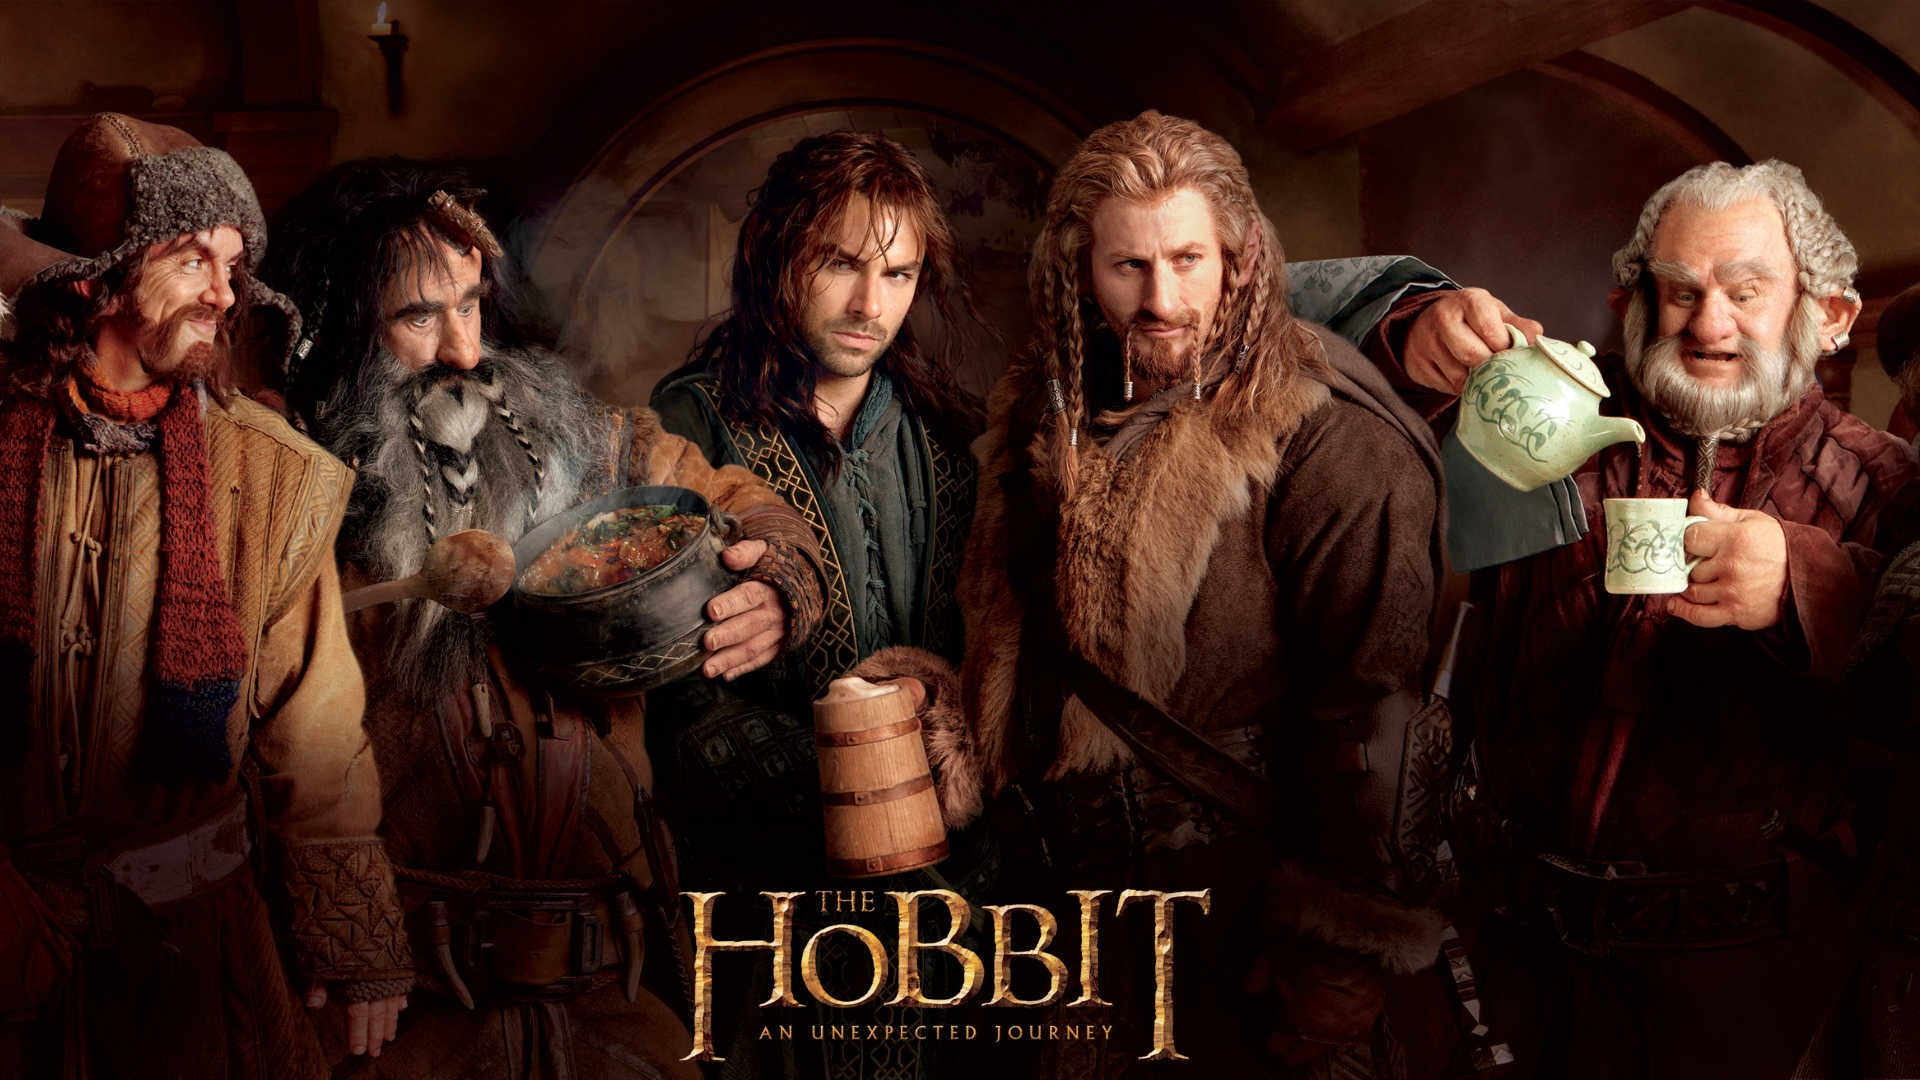 dwarfs The Hobbit Dori Kili Fili Bifur Bofur Wallpapers 1920x1080